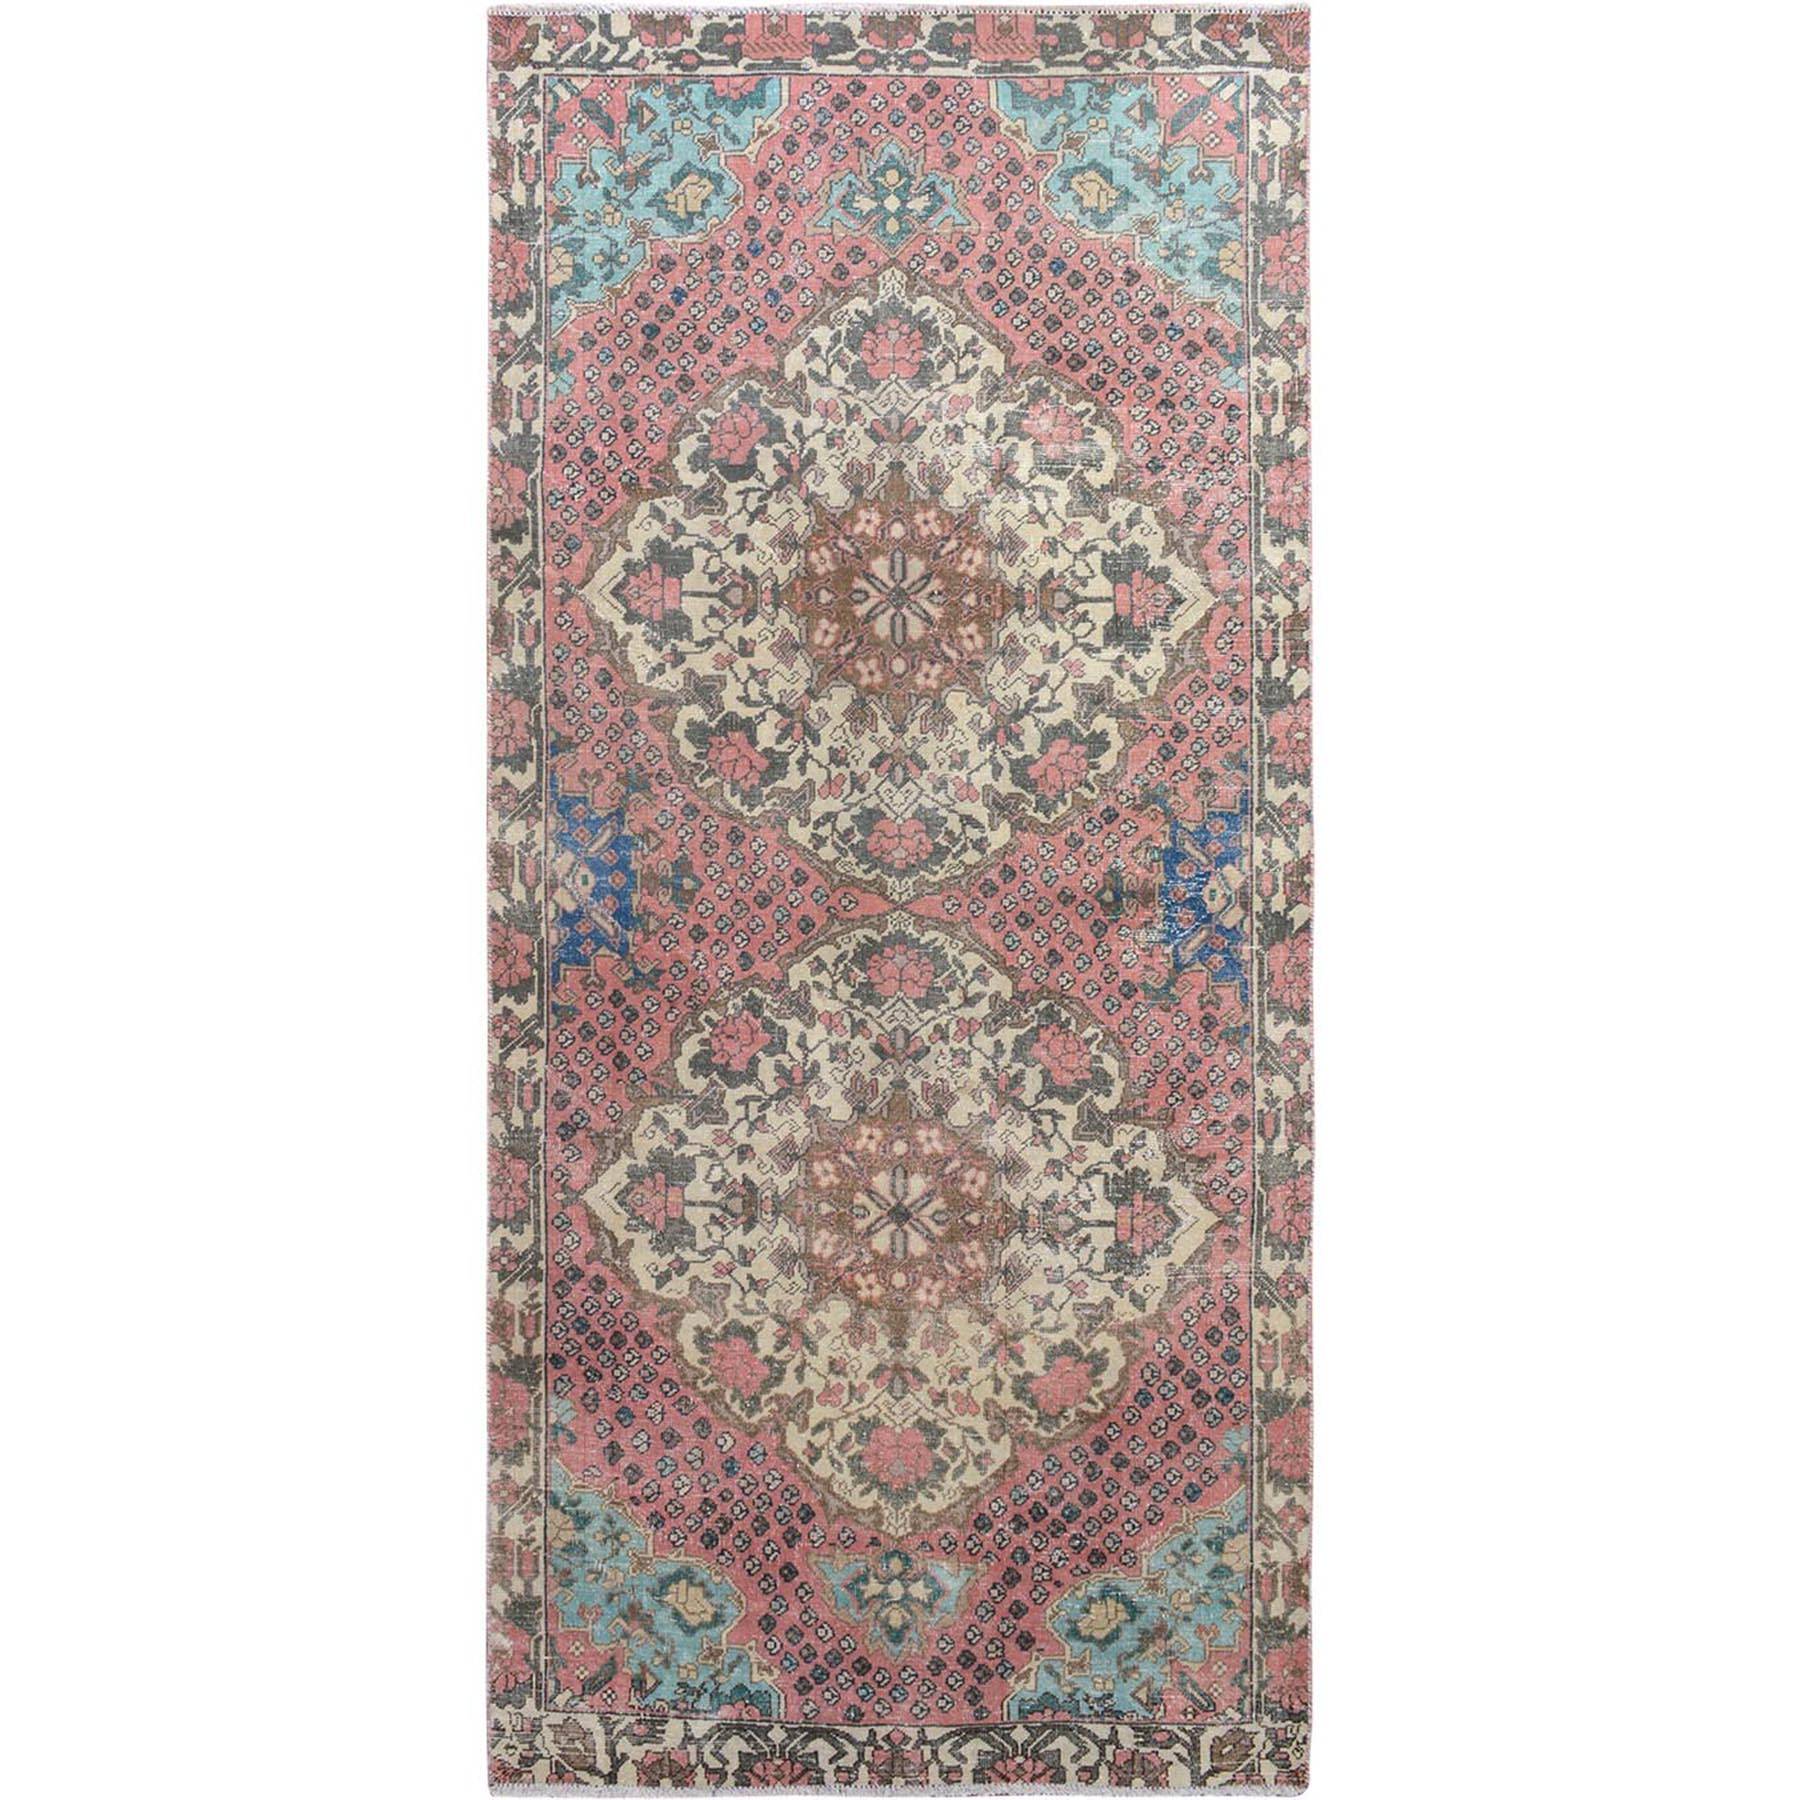 "4'5""x9' Pink Vintage and Worn Down Washed Runner Persian Antique Bakhtiari Hand Knotted Oriental Rug"